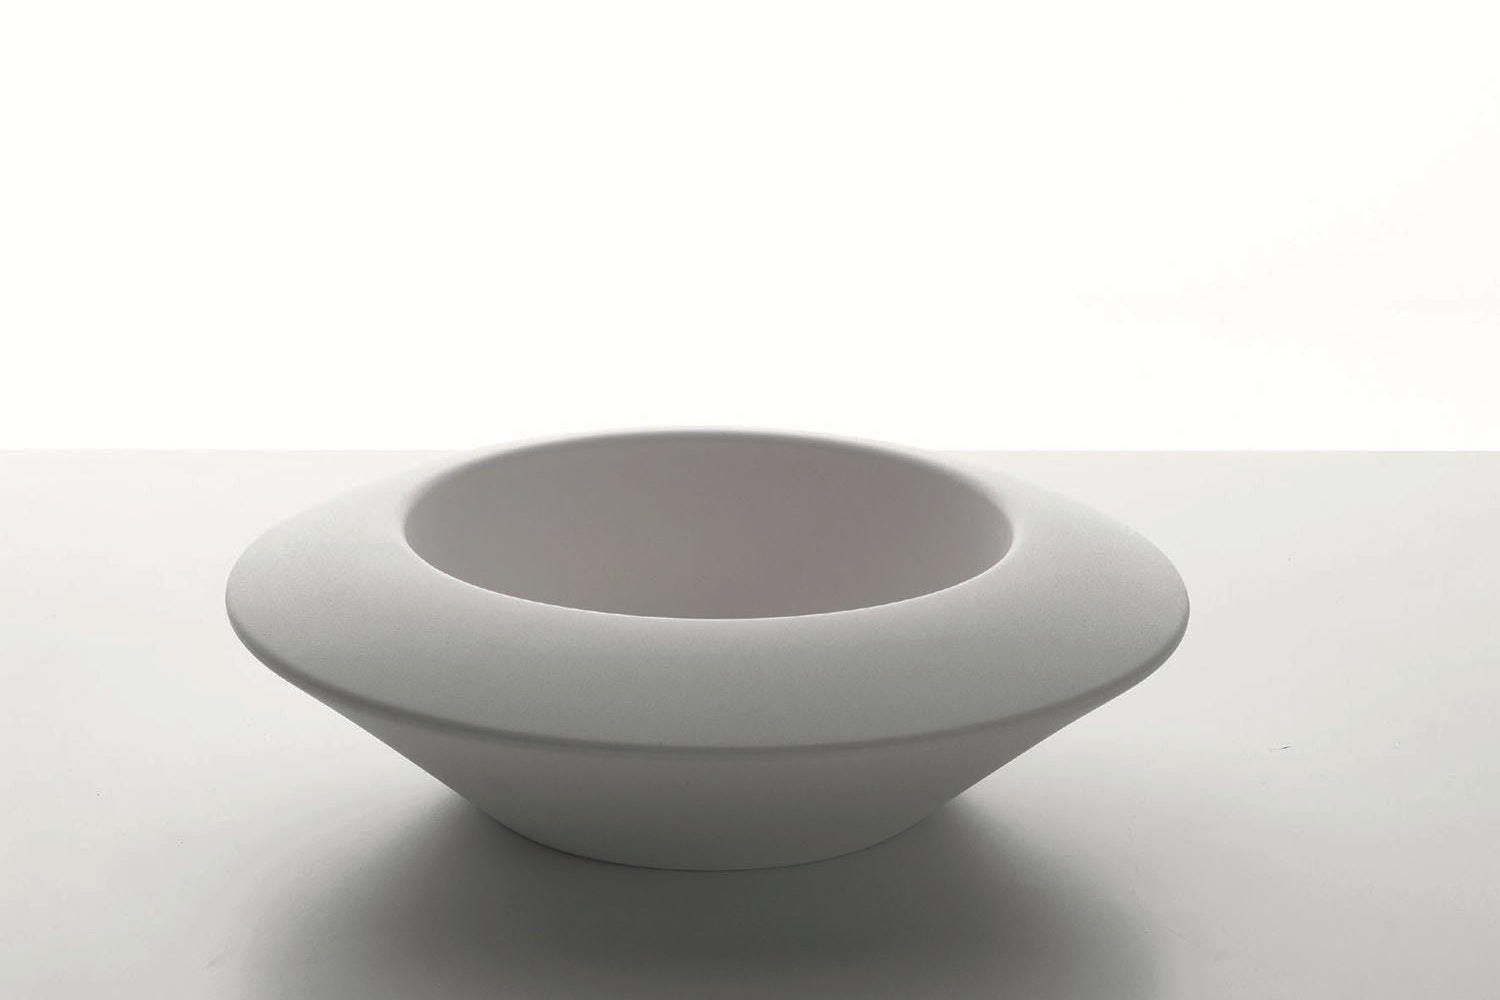 Inorbita Pot by Alberto Meda for Serralunga